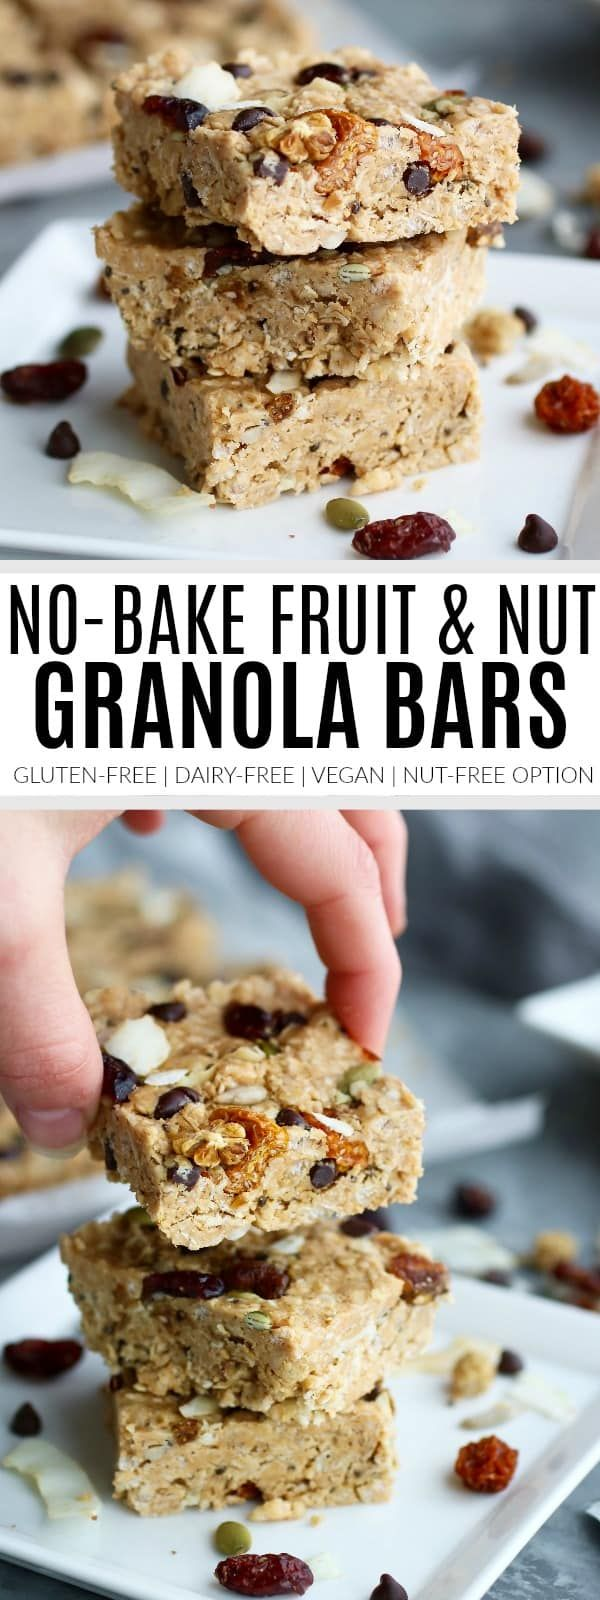 Made with just 7 ingredients, No-Bake Fruit & Nut Granola Bars are quick to make, budget-friendly and great for lunch boxing & afternoon snacking. A gluten-free recipes that's prepared in less than 10 minutes.